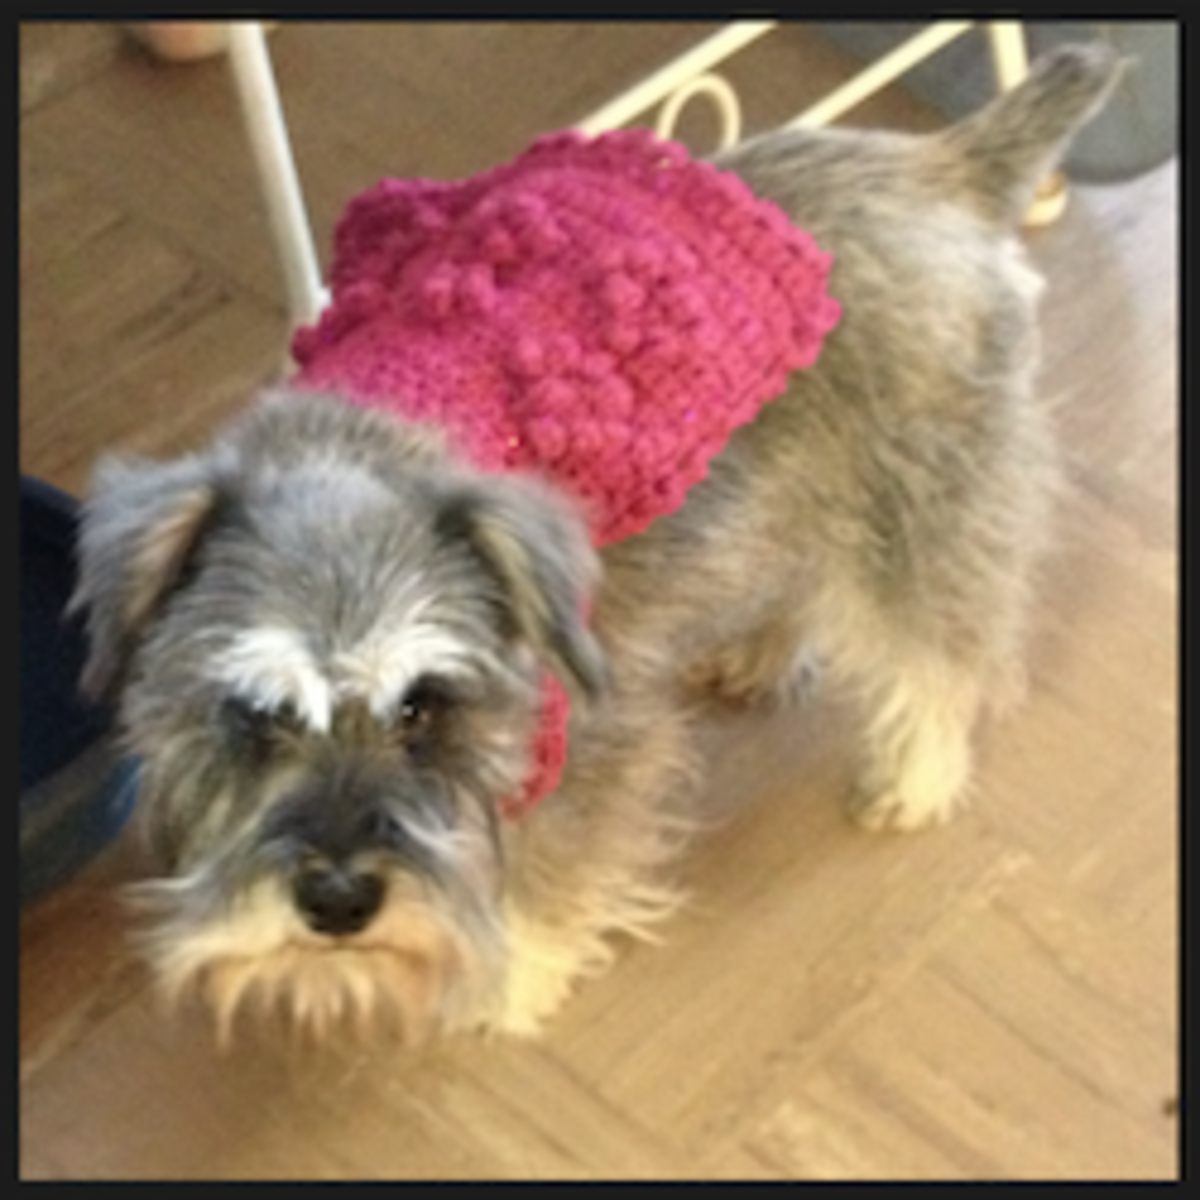 World's Easiest Custom Fit Dog Sweater Free Crochet Pattern! Stay-Put Design!